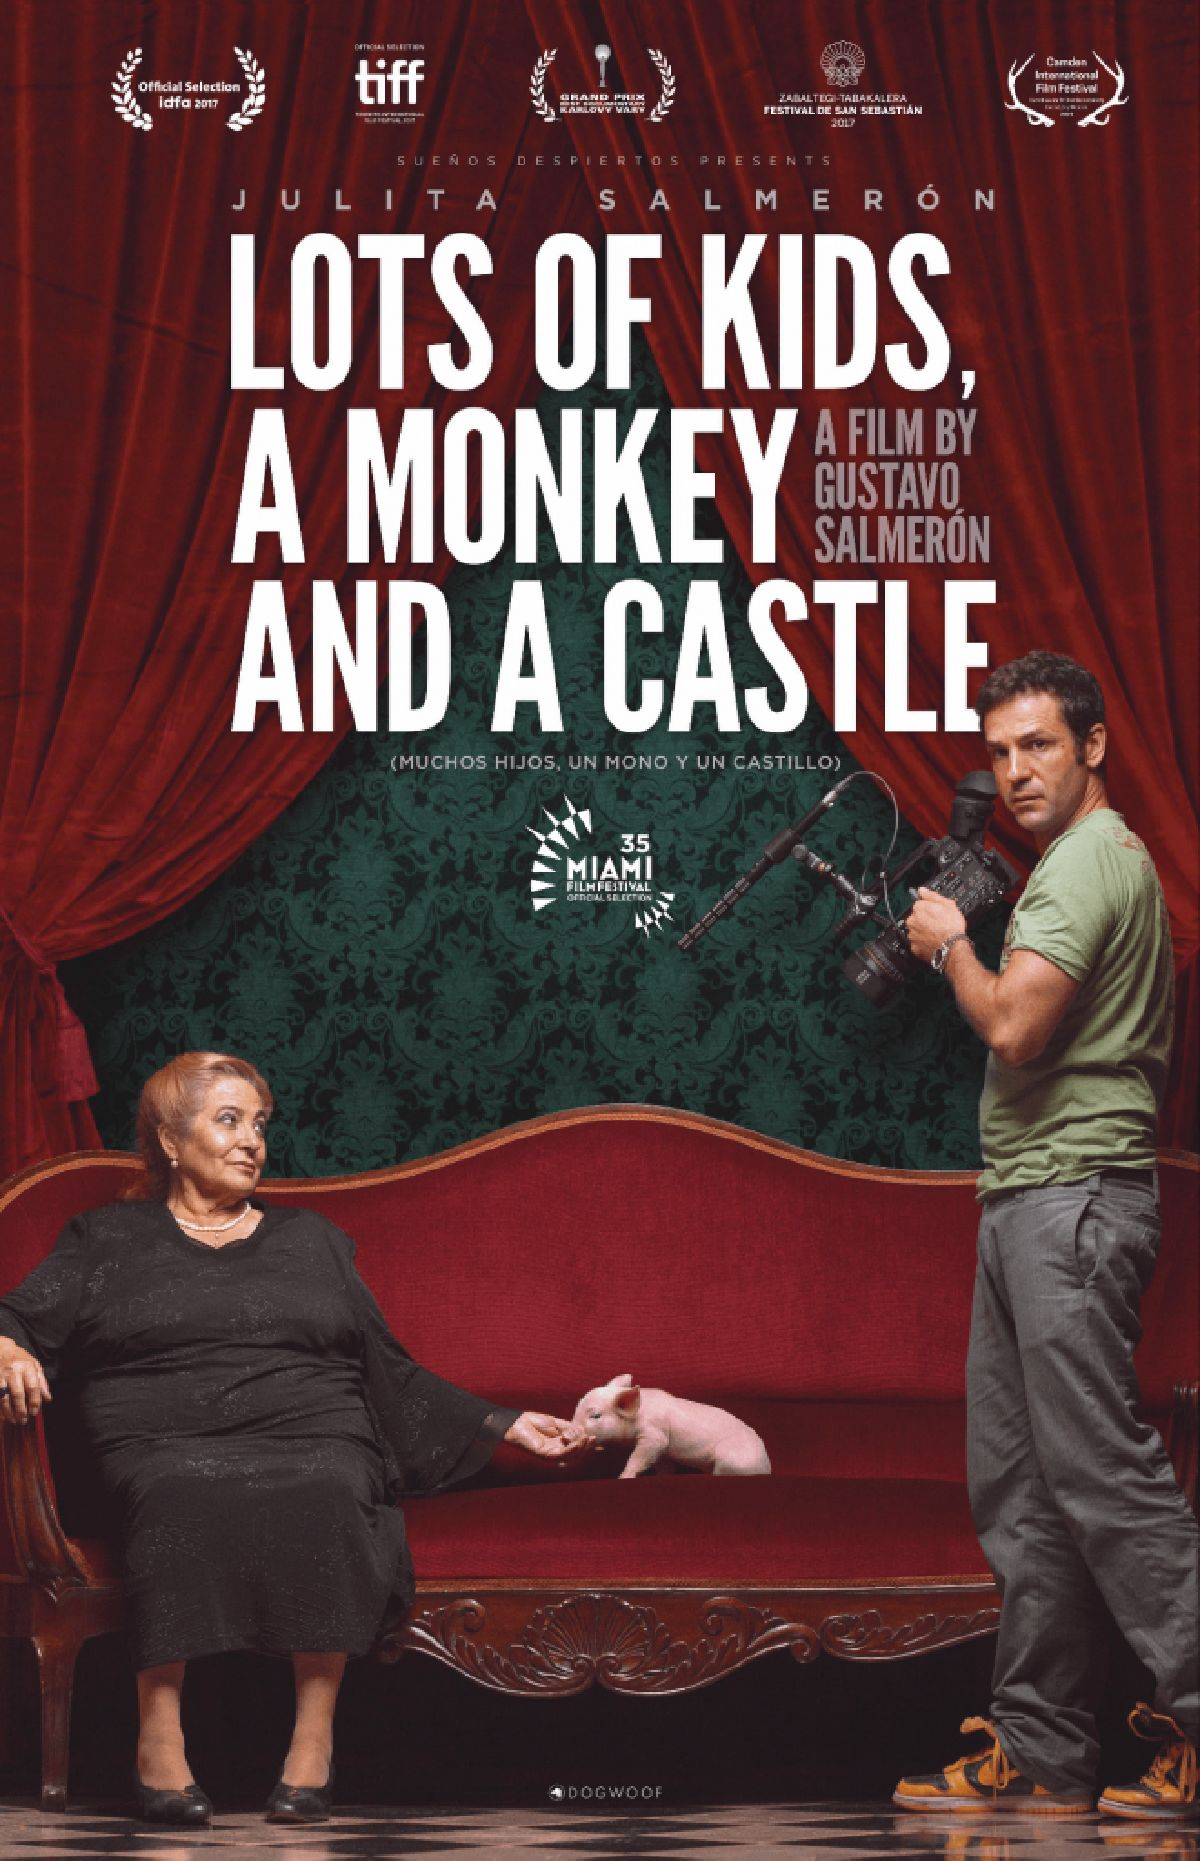 'Lots Of Kids, A Monkey And A Castle' movie poster